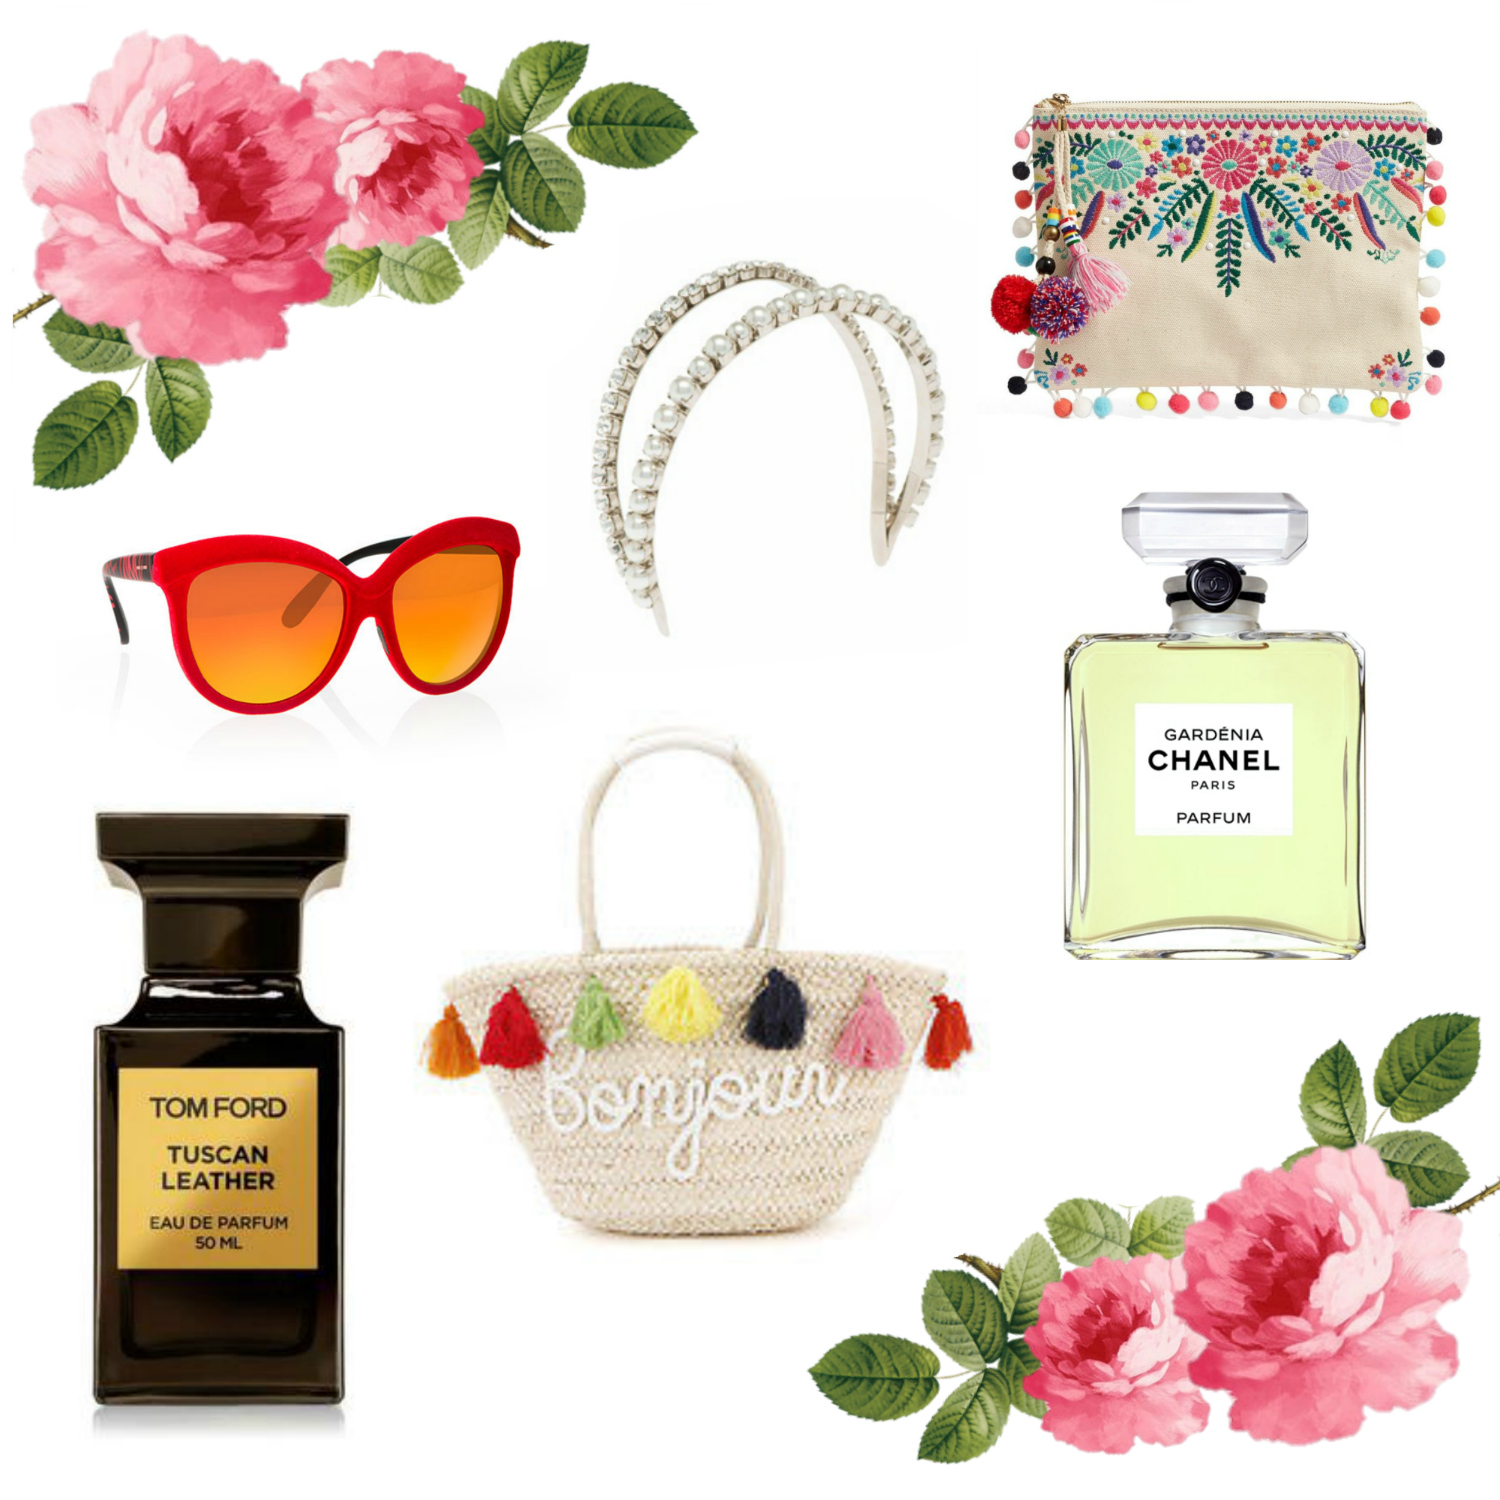 Be inspired with Nicole O'Neil's top picks for Mother's Day. These stylish gift ideas for women are also perfect for birthdays, anniversaries and are the perfect reason to treat yourself too!